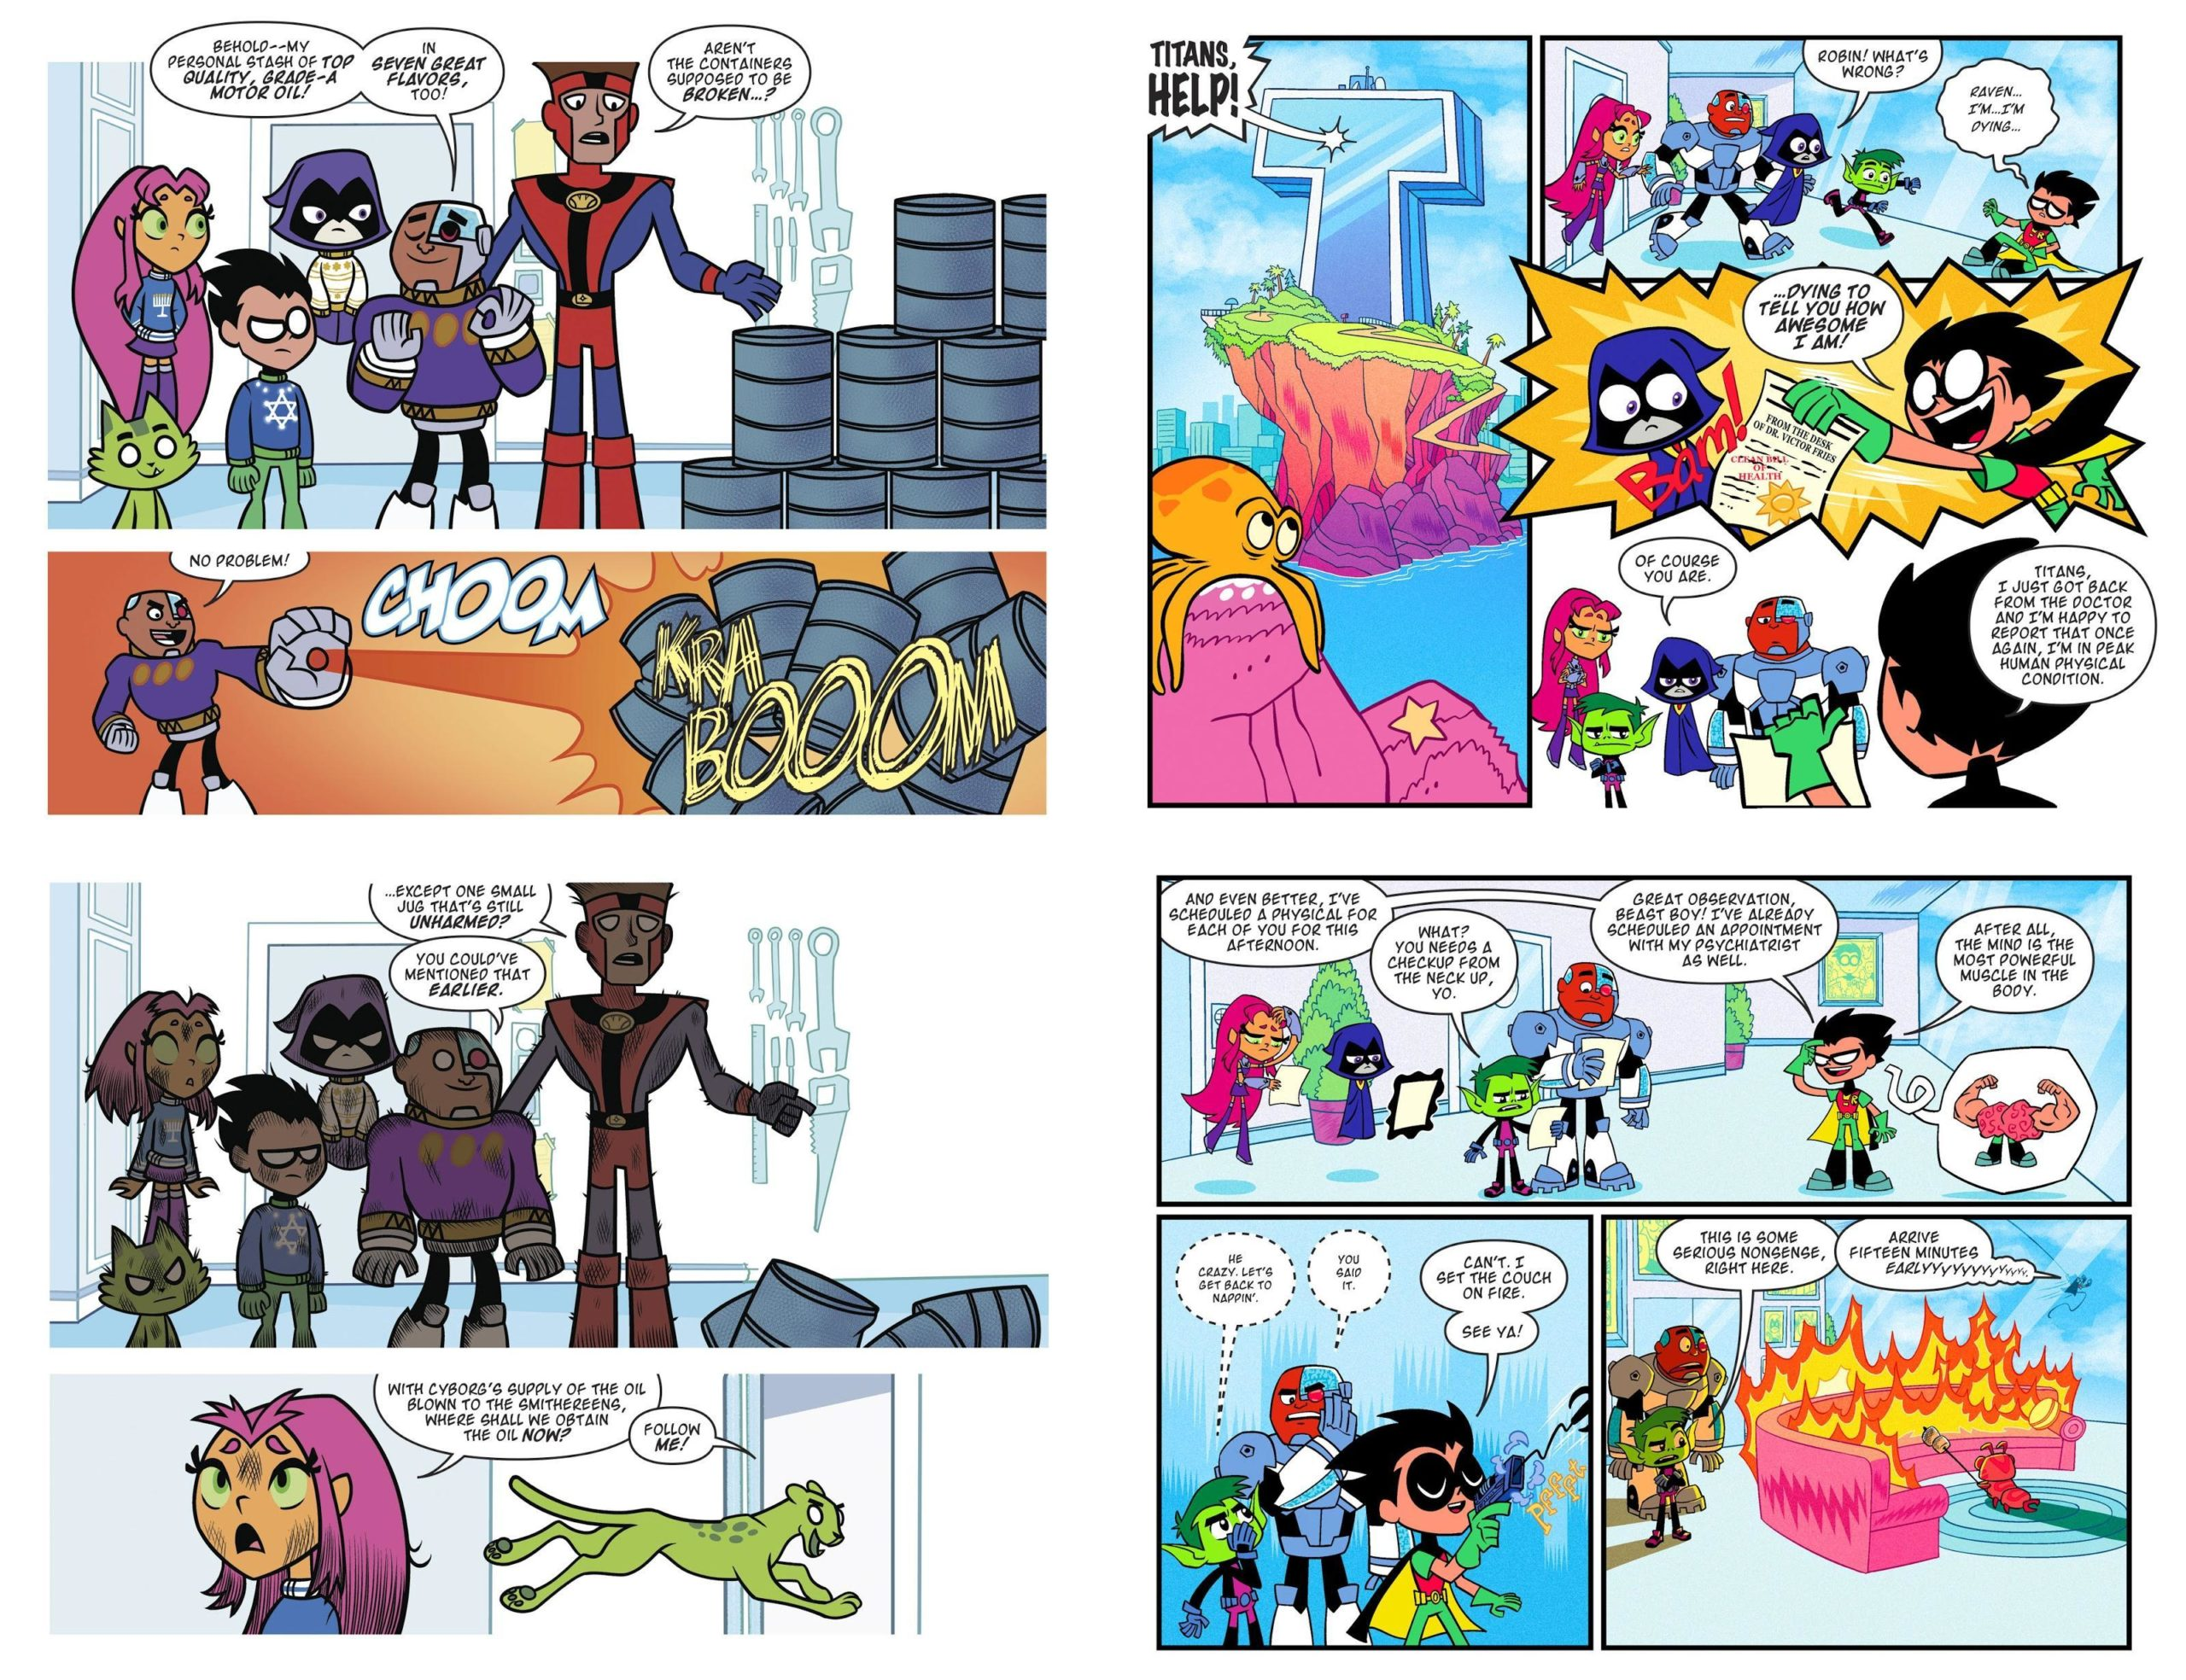 Teen Titans Go Falling Stars review